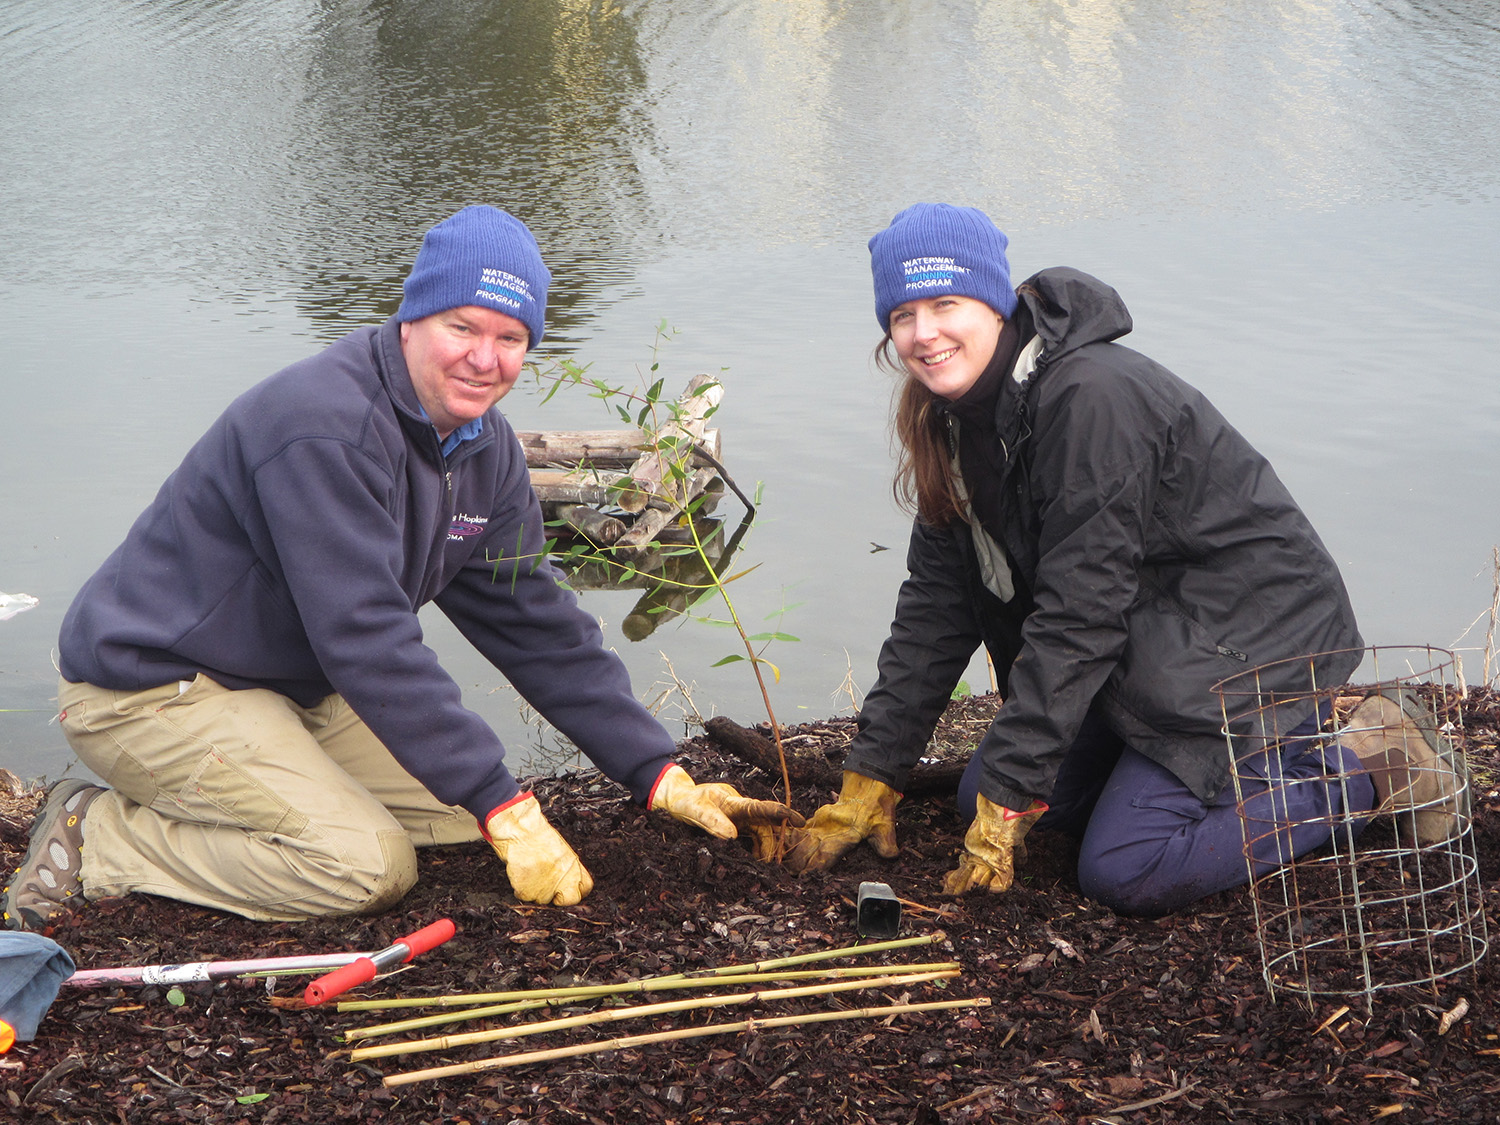 Steve and Renae planting their twinning tree